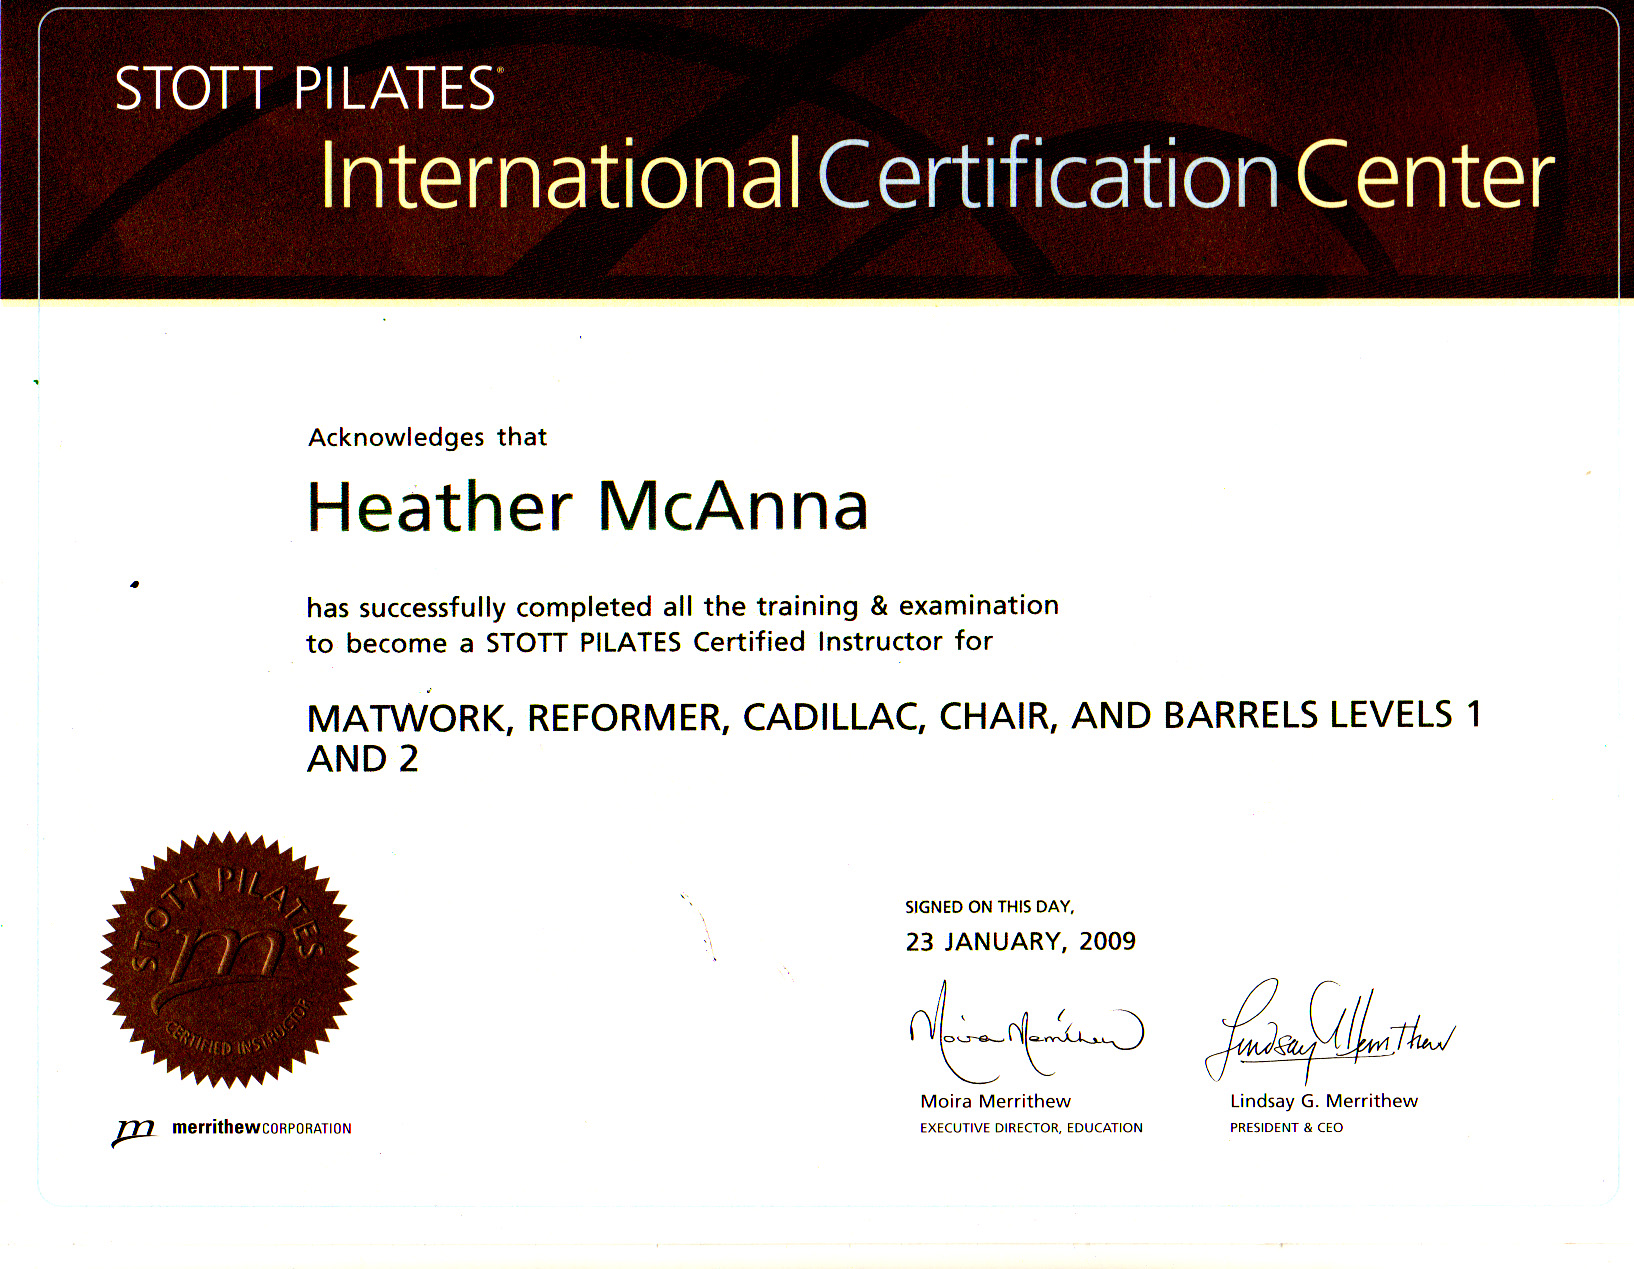 Hd pilates welcome stott ref cadi chair and barrels int and ess levels 2007 certificate xflitez Choice Image